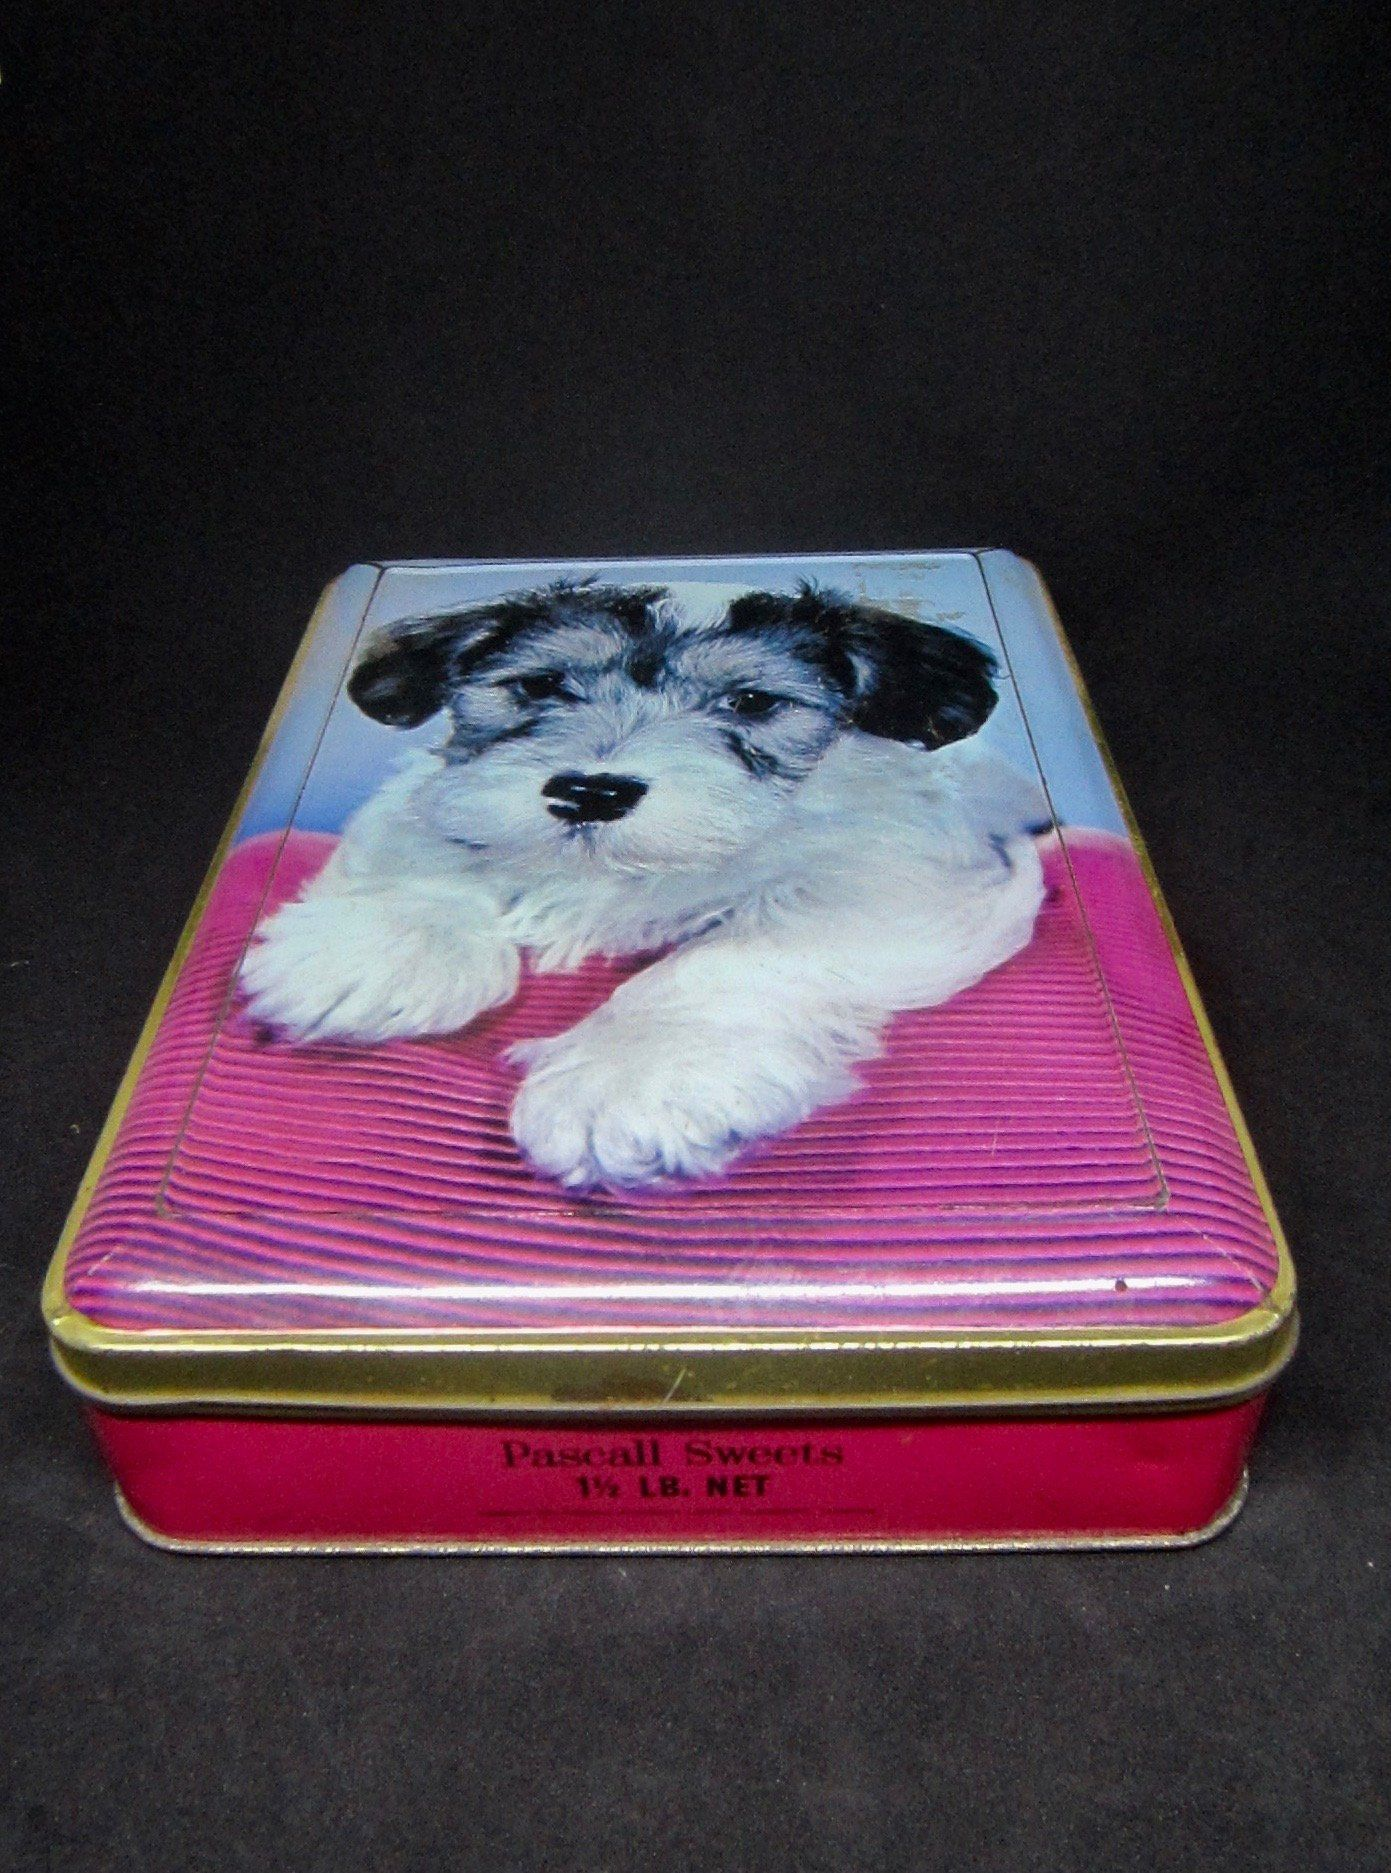 Australian Pascall Sweets Puppy Tin Vintage 1 1 2 Lb Rectangular Confectionery Tin 1960 S Claremont Tasmania By Vintage Tins Vintage Country Vintage